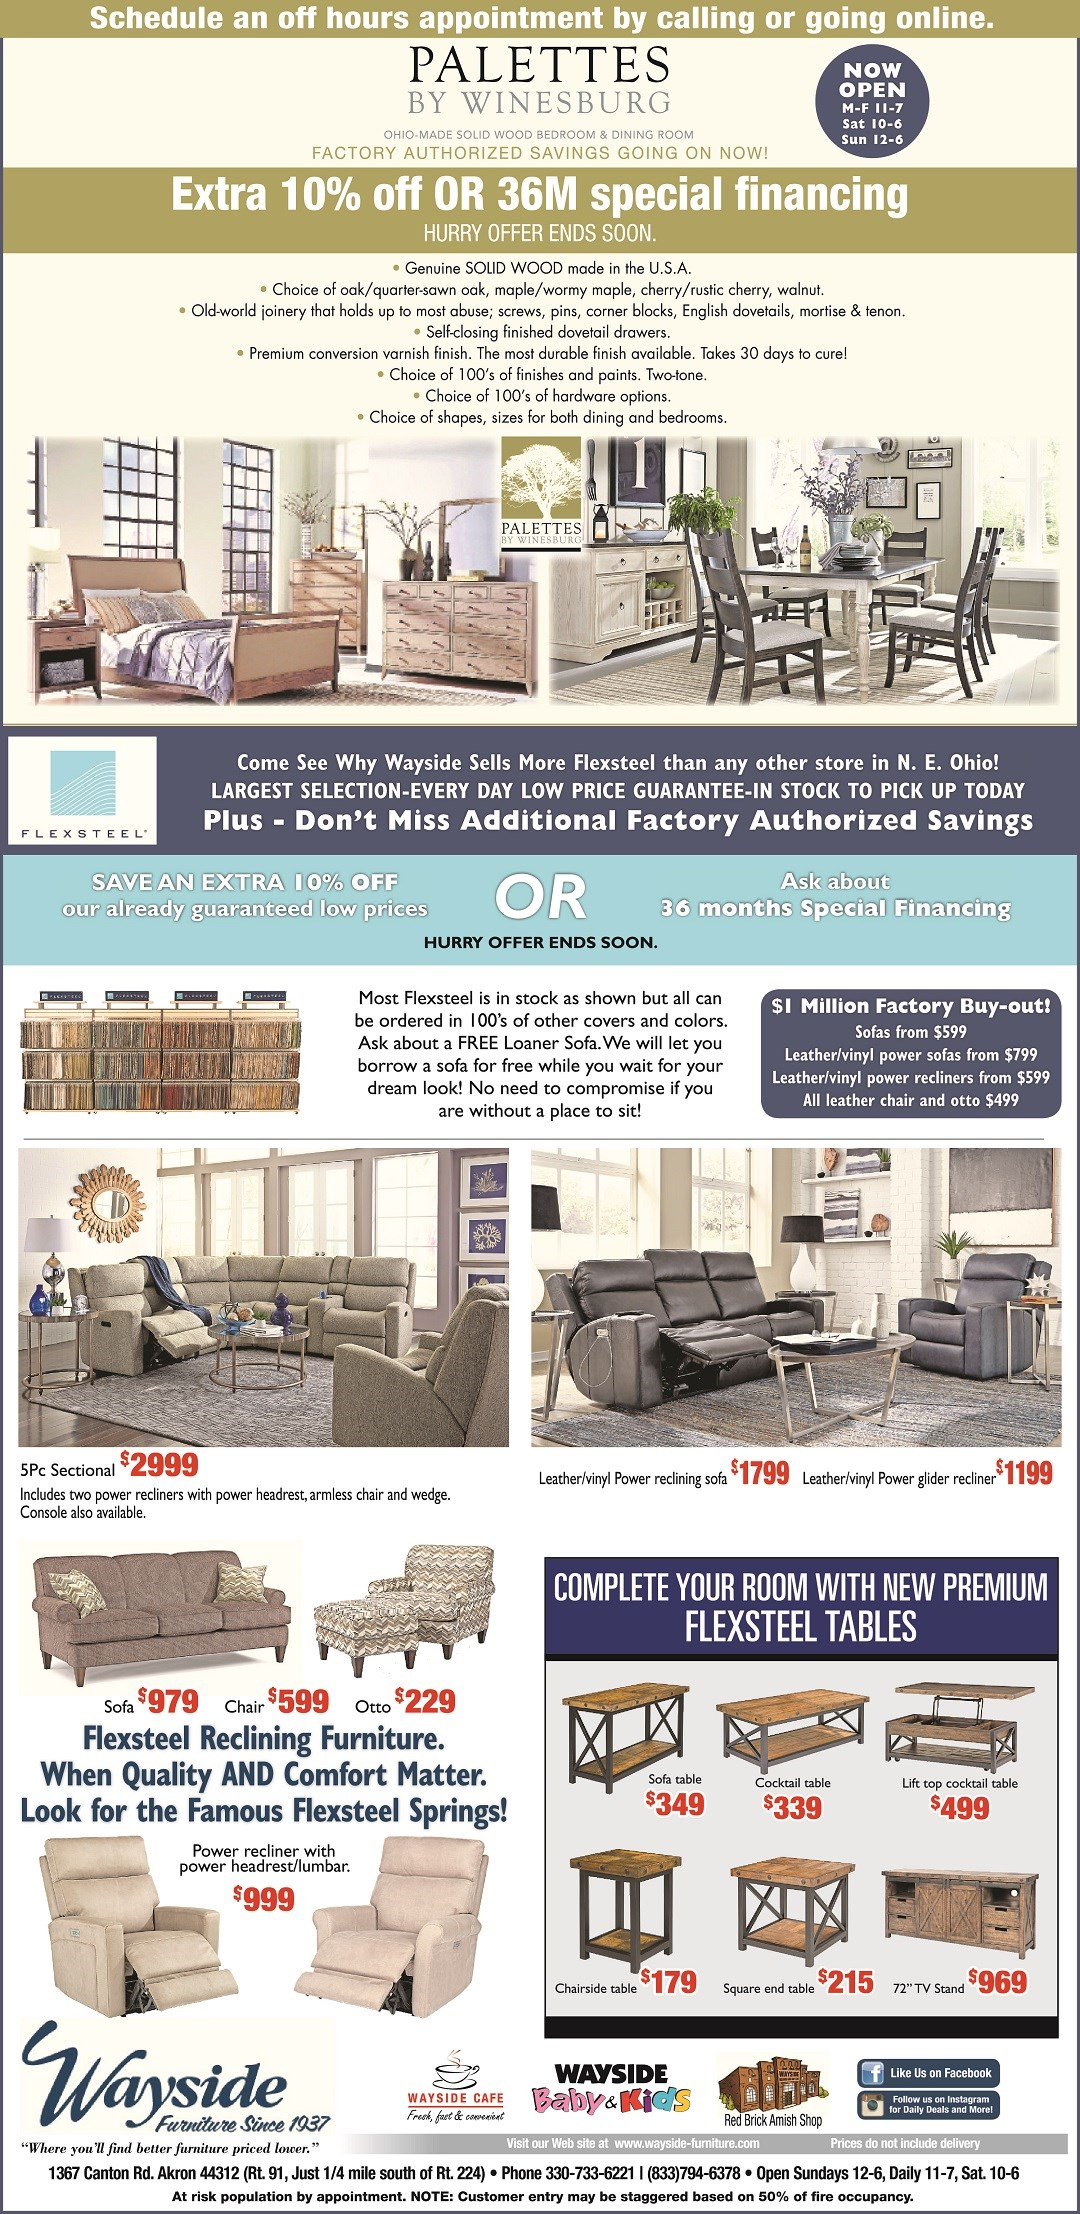 Palettes by Winesburg and Flexsteel Factory Authorized savings. Get an extra 10% off our everyday low prices.